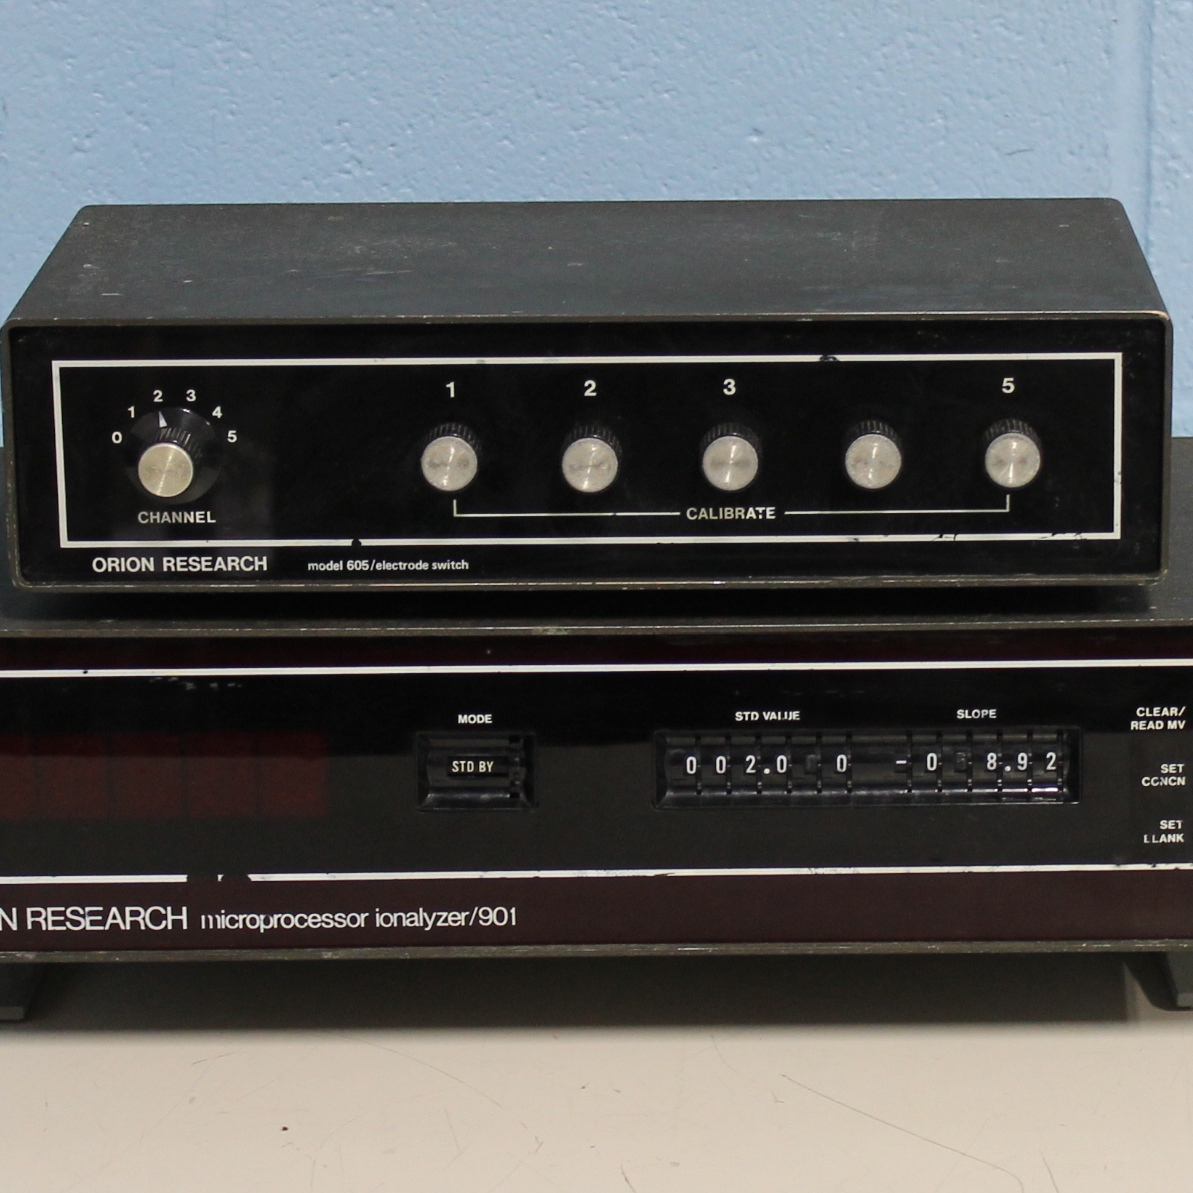 Orion Research Microprocessor Ionalyzer Model 901 with Electrode Switch Model 605 Image